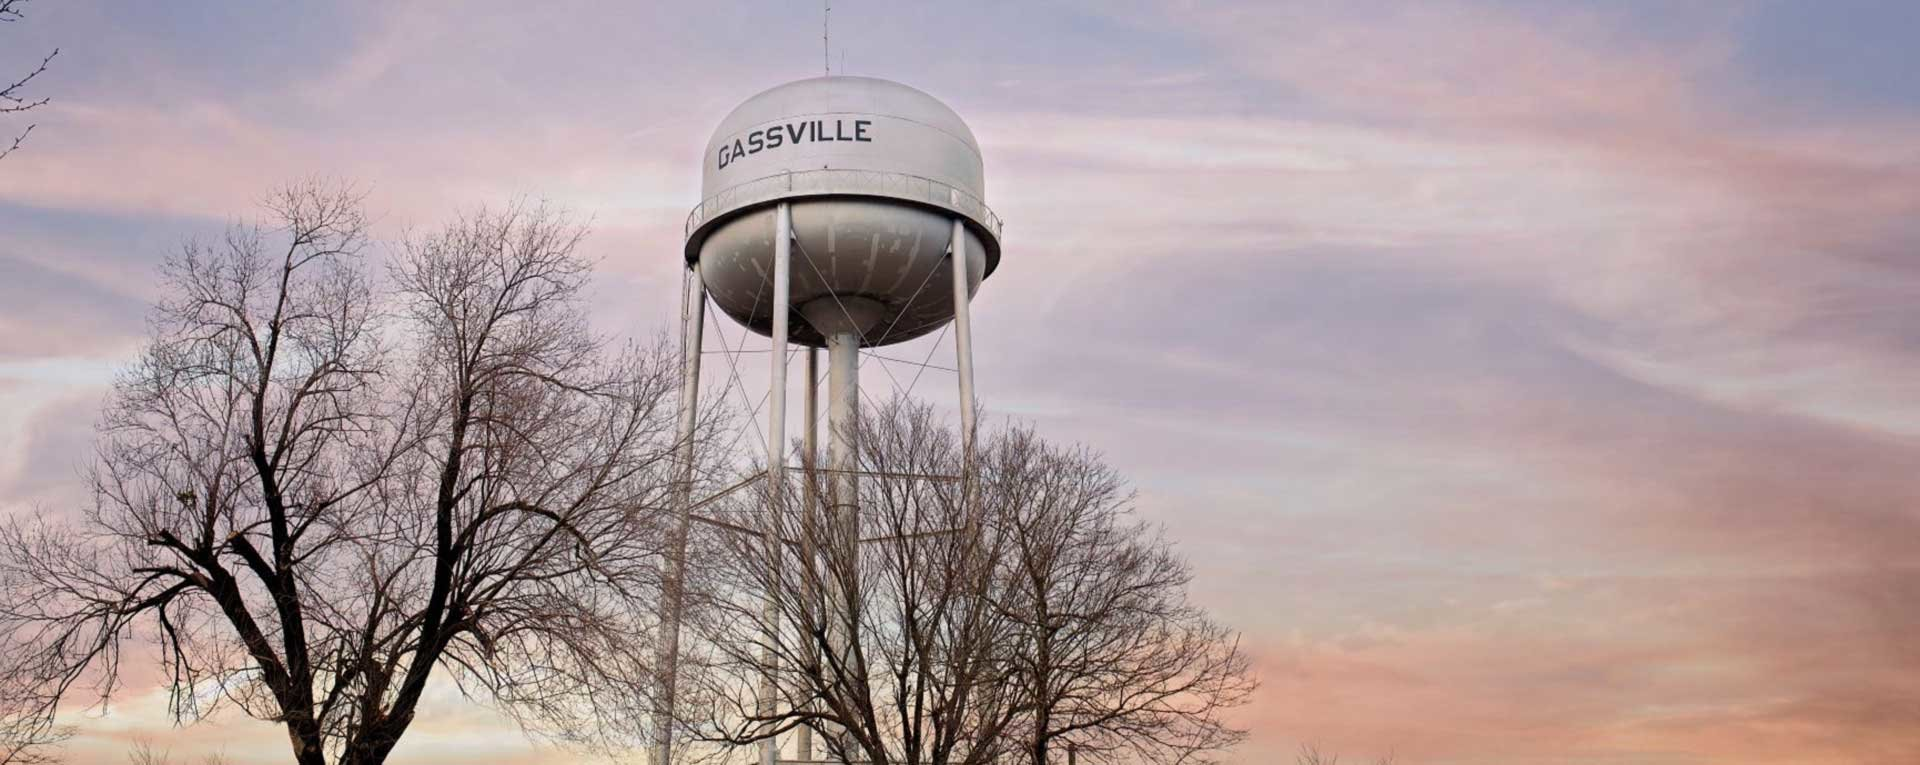 City of Gassville Water Tower